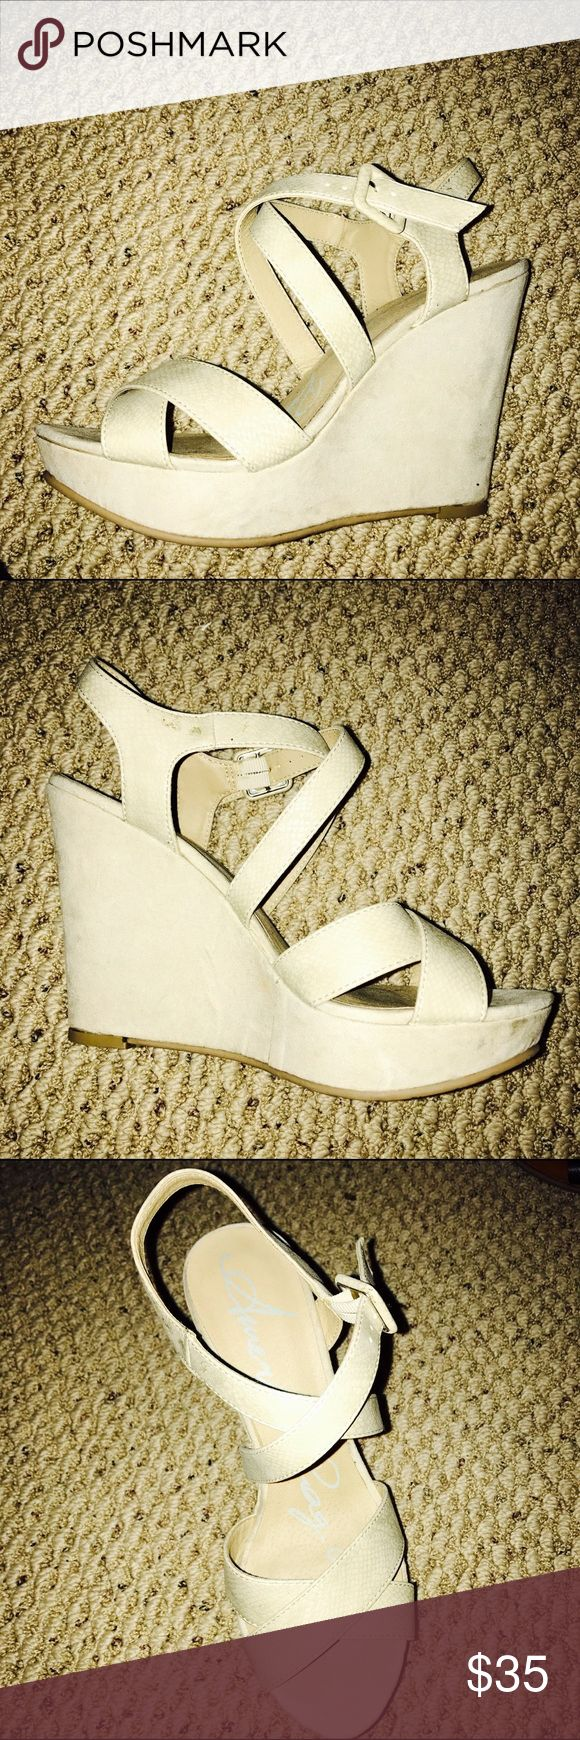 American Rag Nude Wedges Worn once, great condition!! American Rag Shoes Wedges